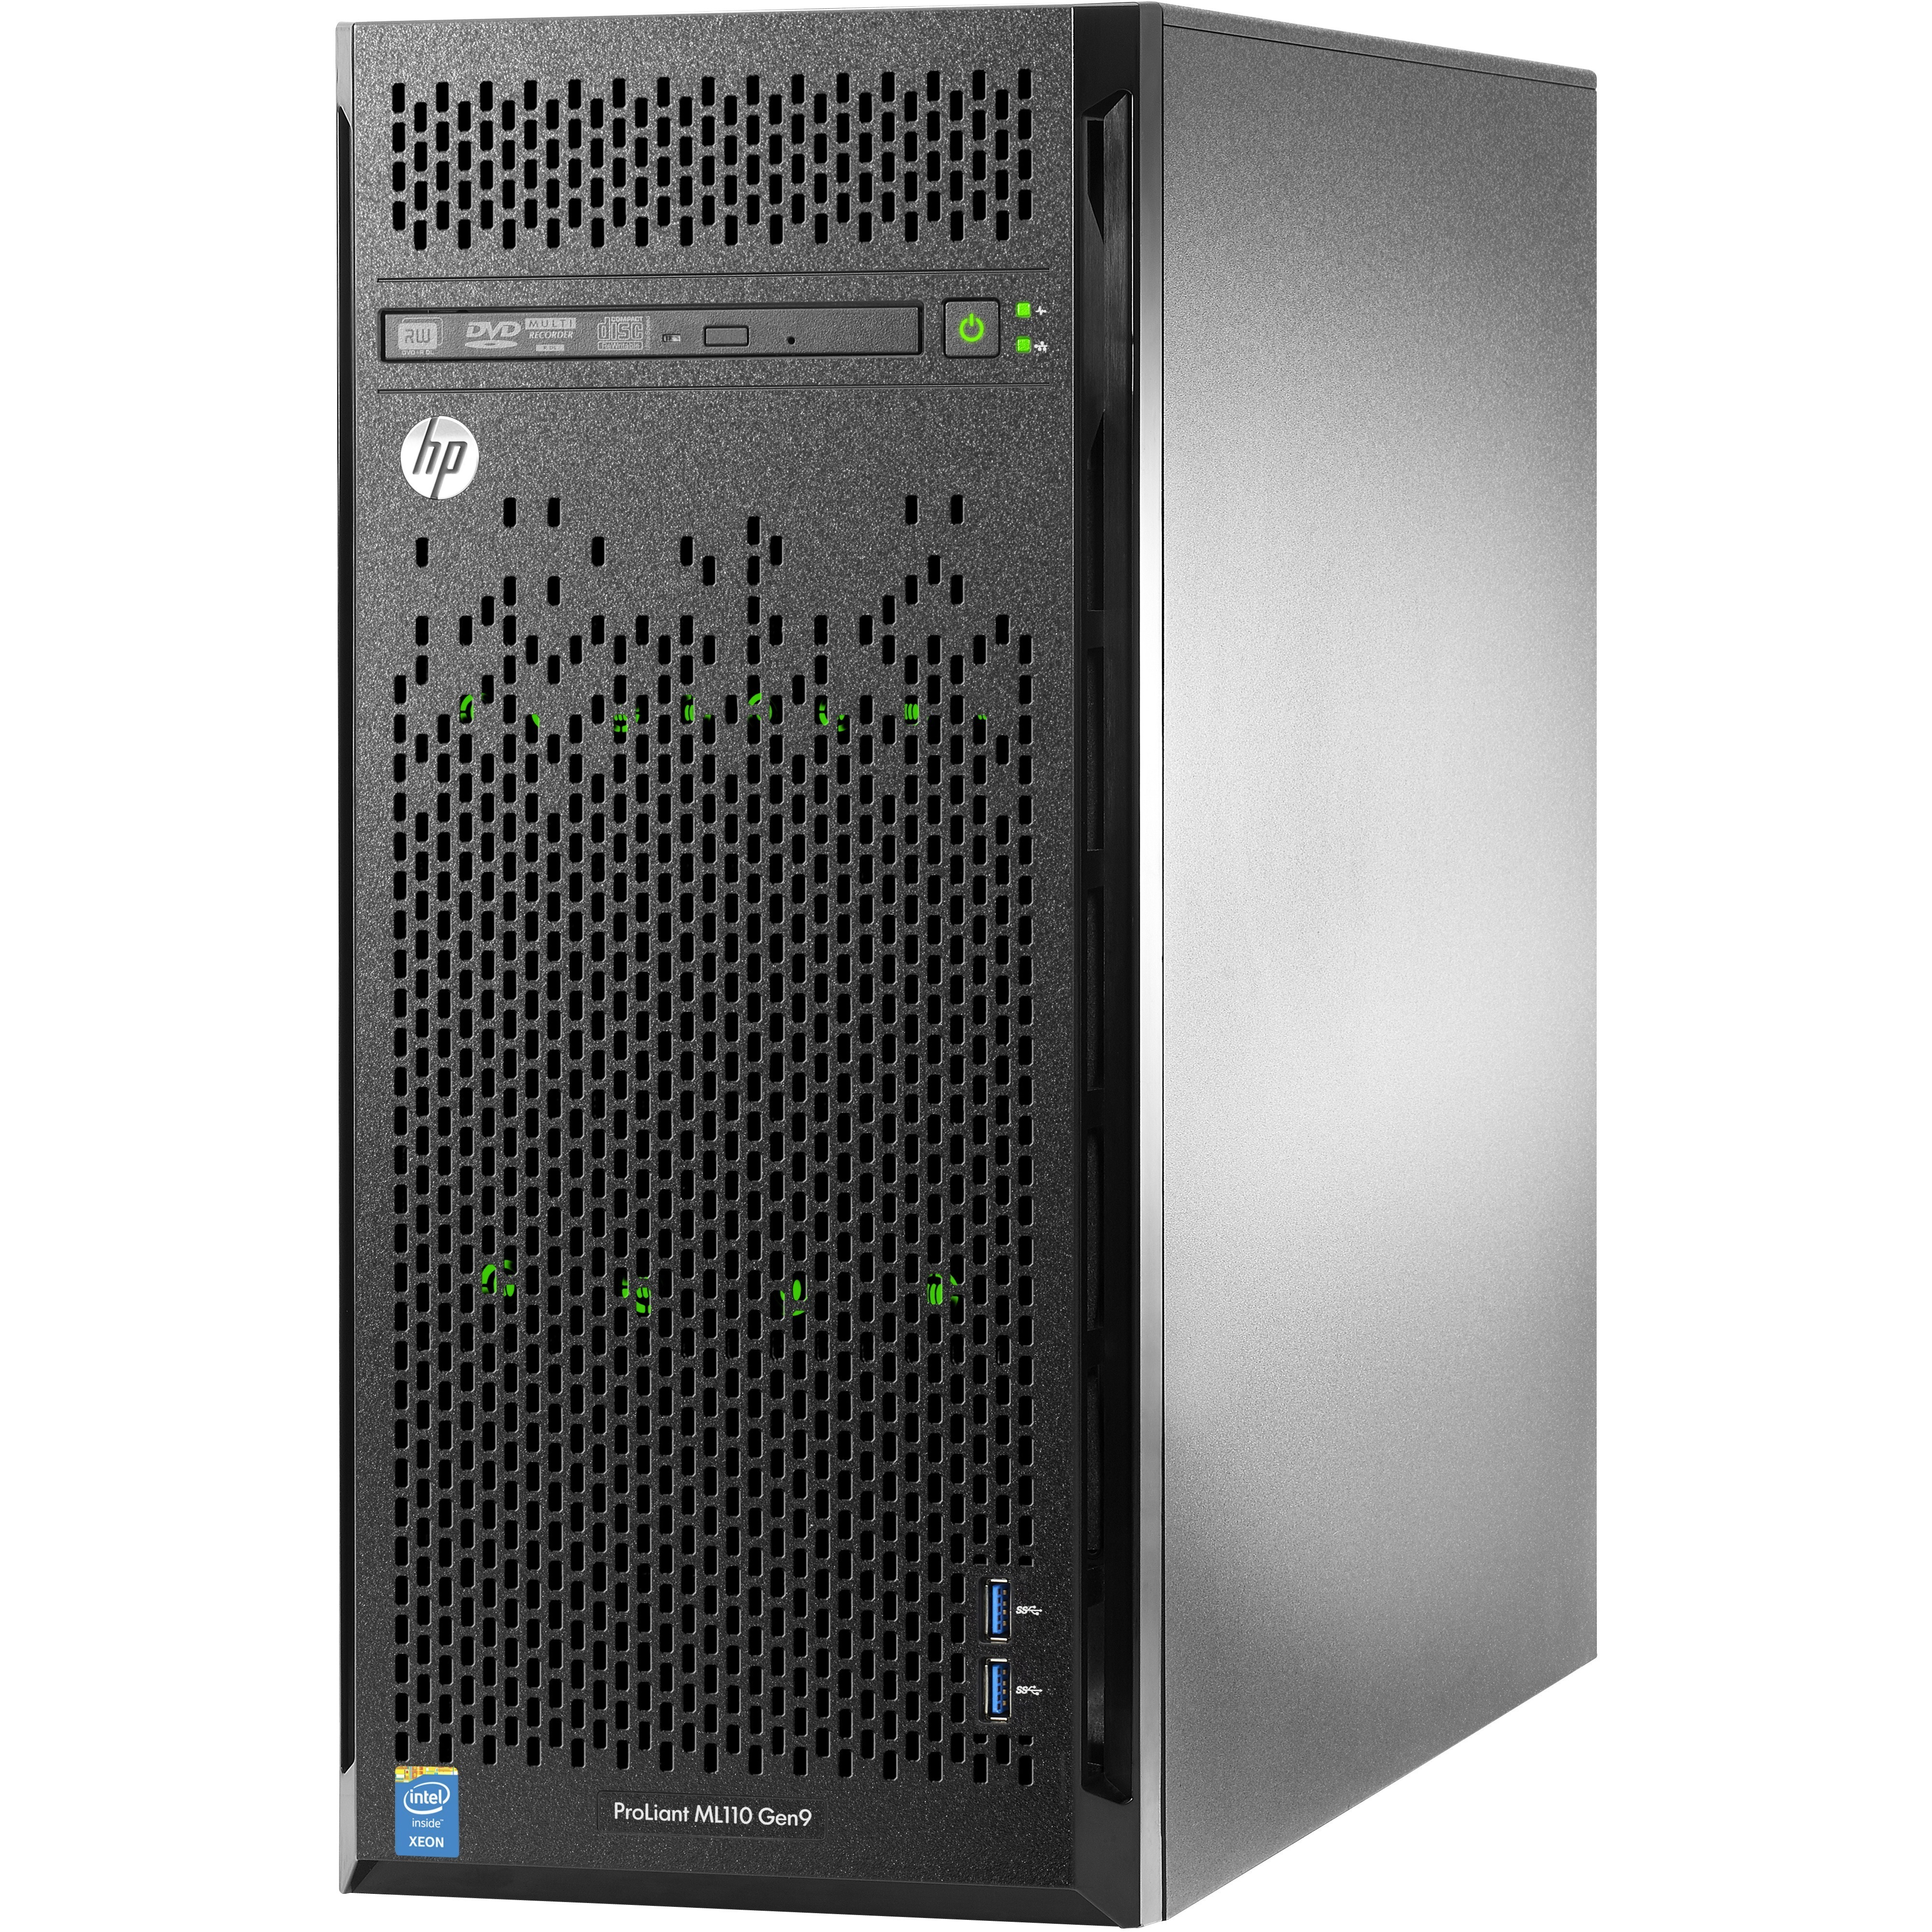 HP ProLiant ML110 G9 4.5U Tower Server - 1 x Intel Xeon E5-2603 v3 Hexa-core 6 Core 1.60 GHz